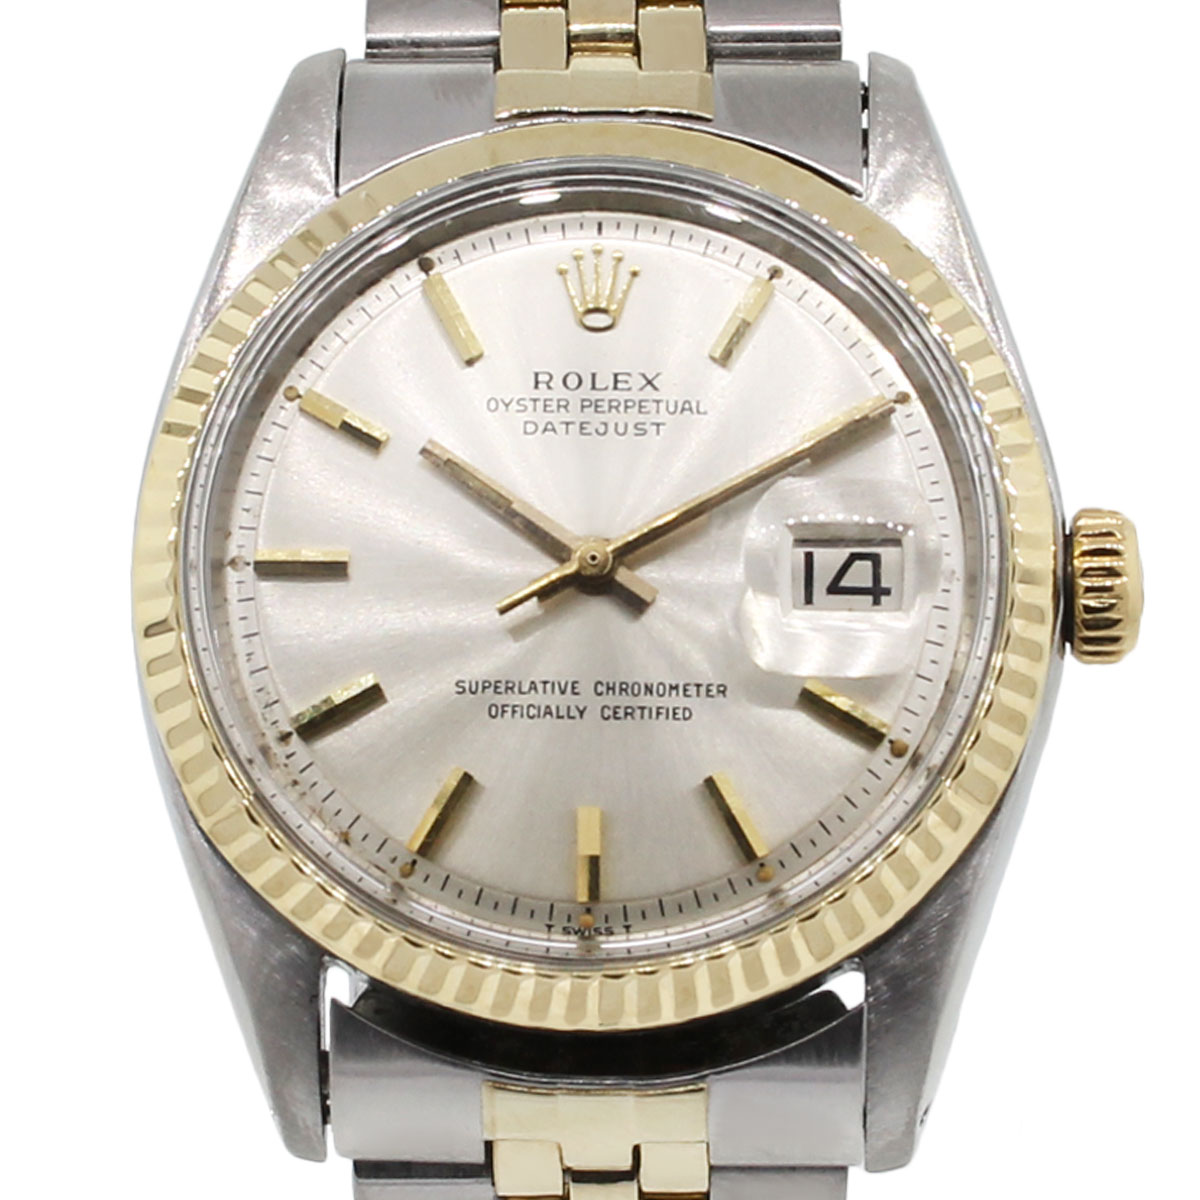 Rolex 1601 datejust two tone champagne dial jubilee band watch for Jubilee watch